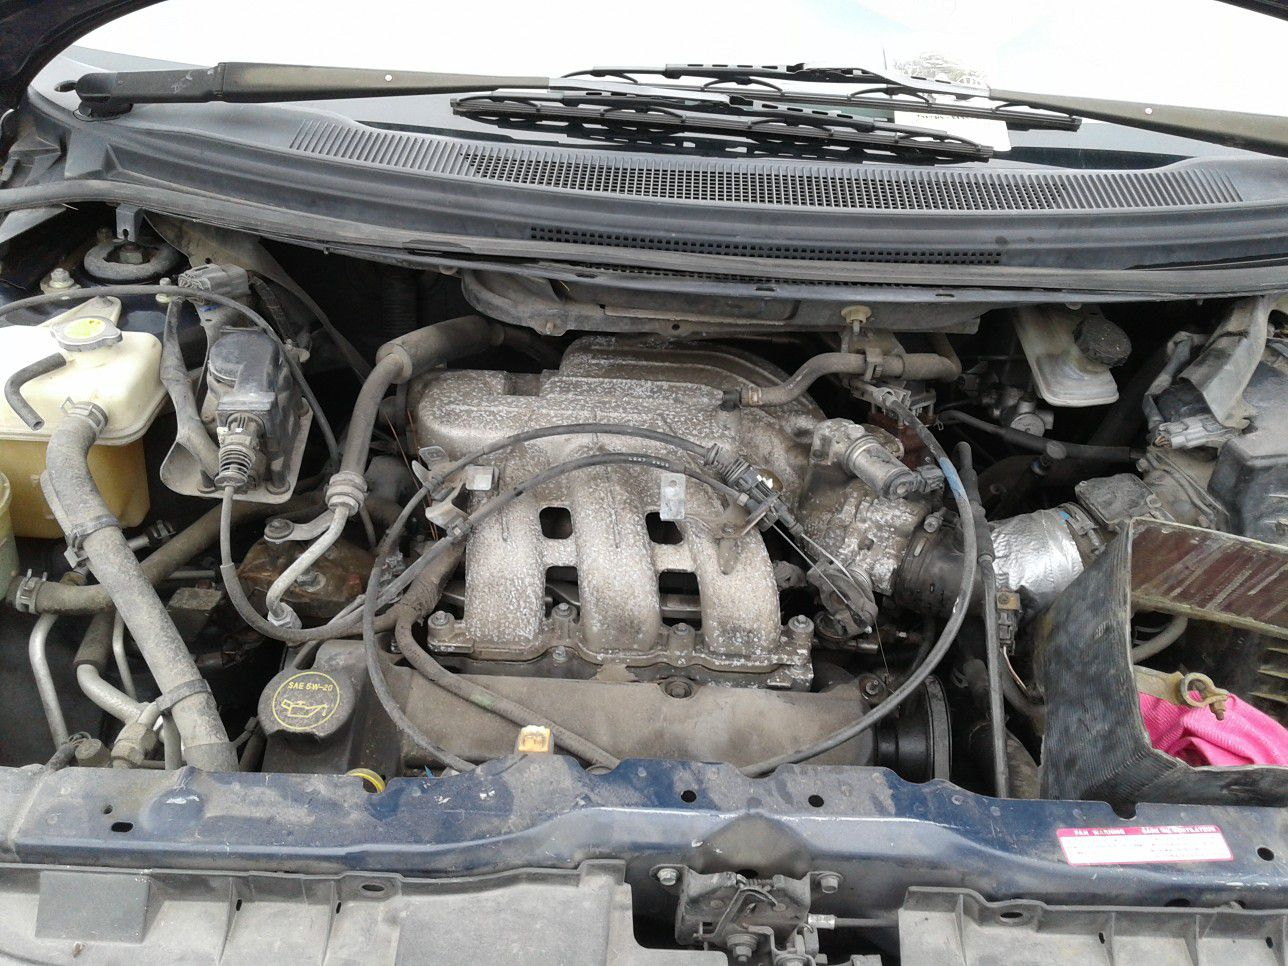 2002 Mazda mpv 3.0 motor for parts only new inventory